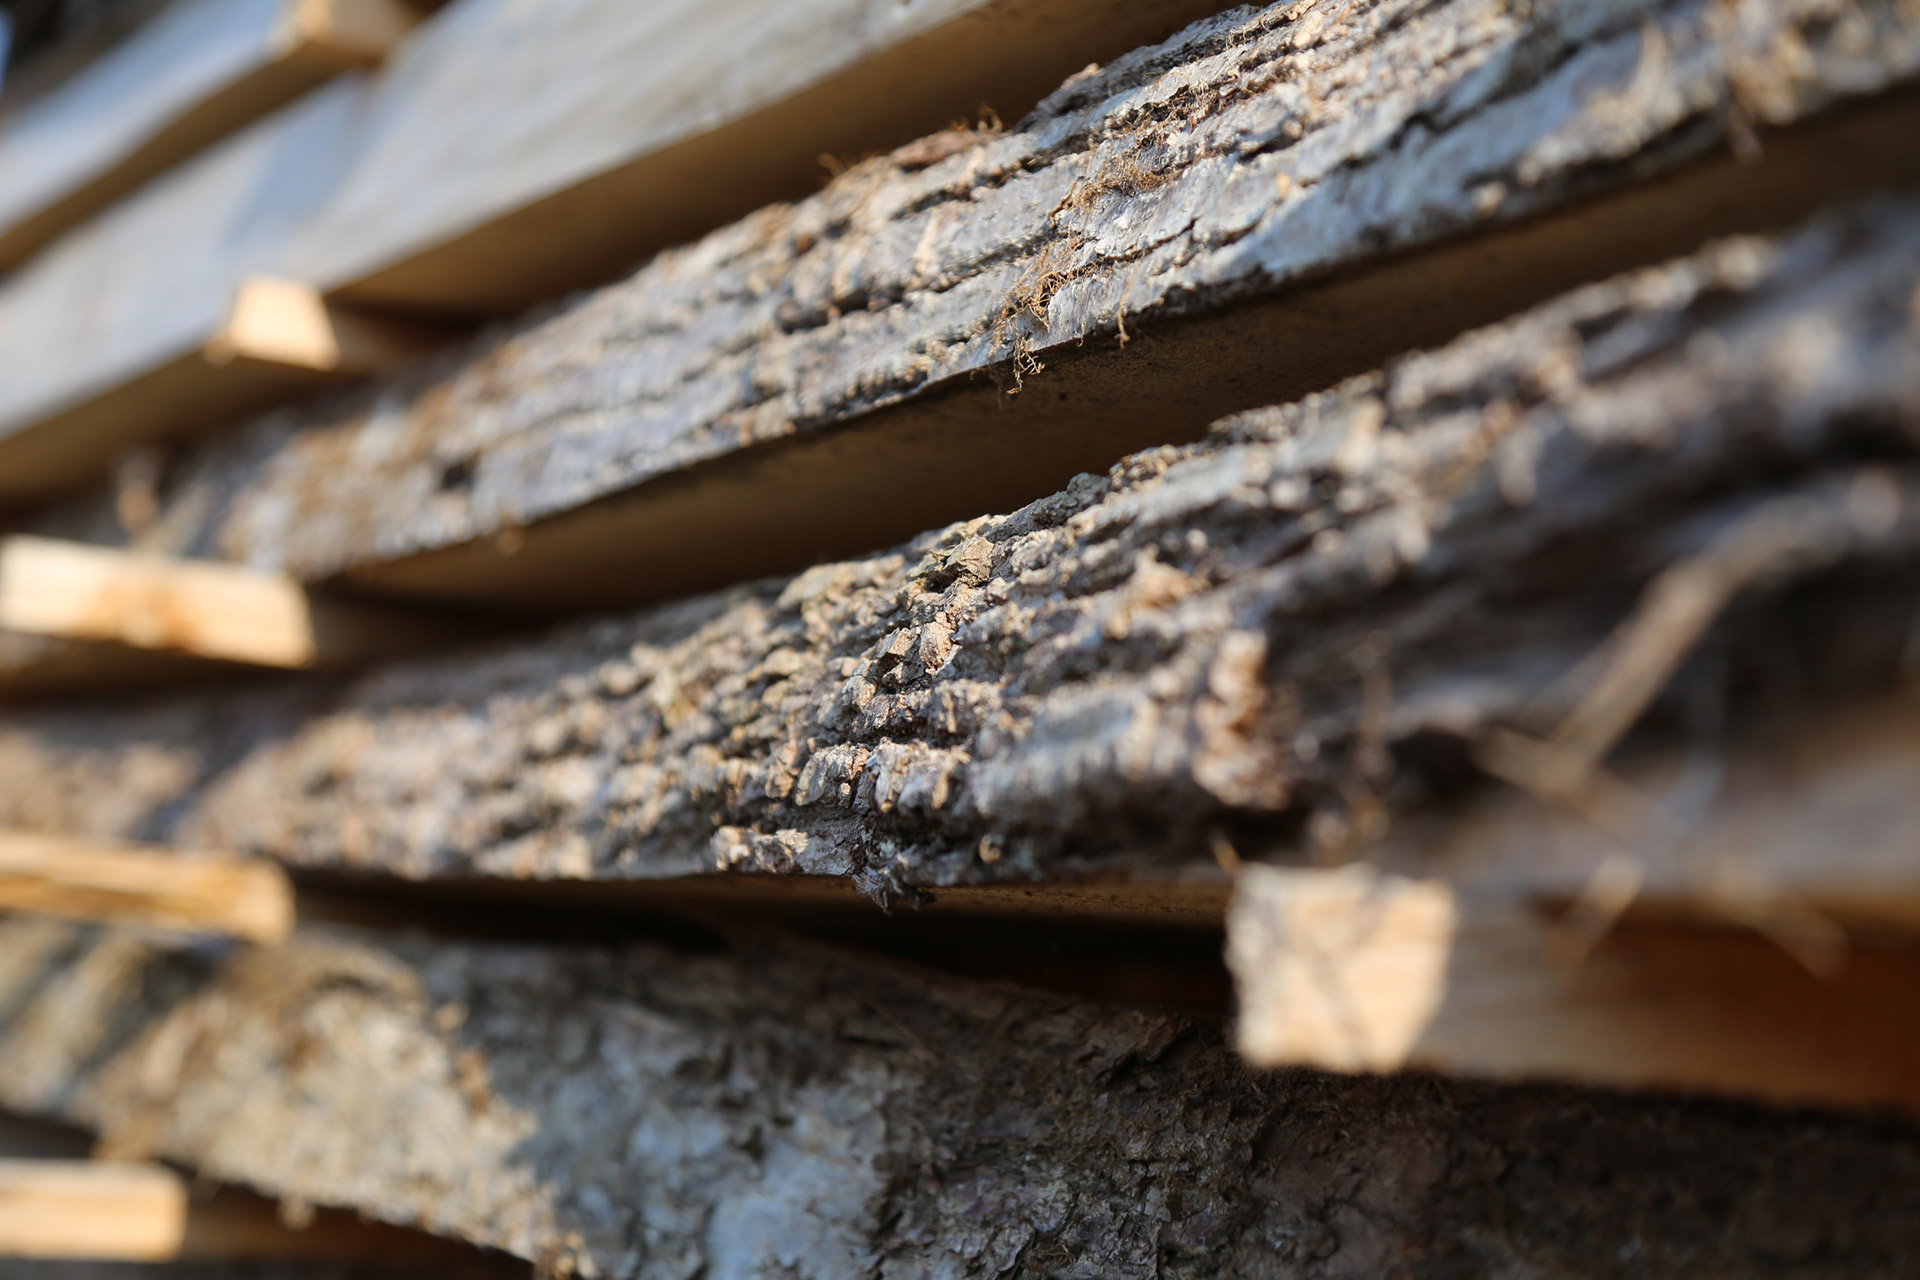 Lumber in natural drying at our outdoor park